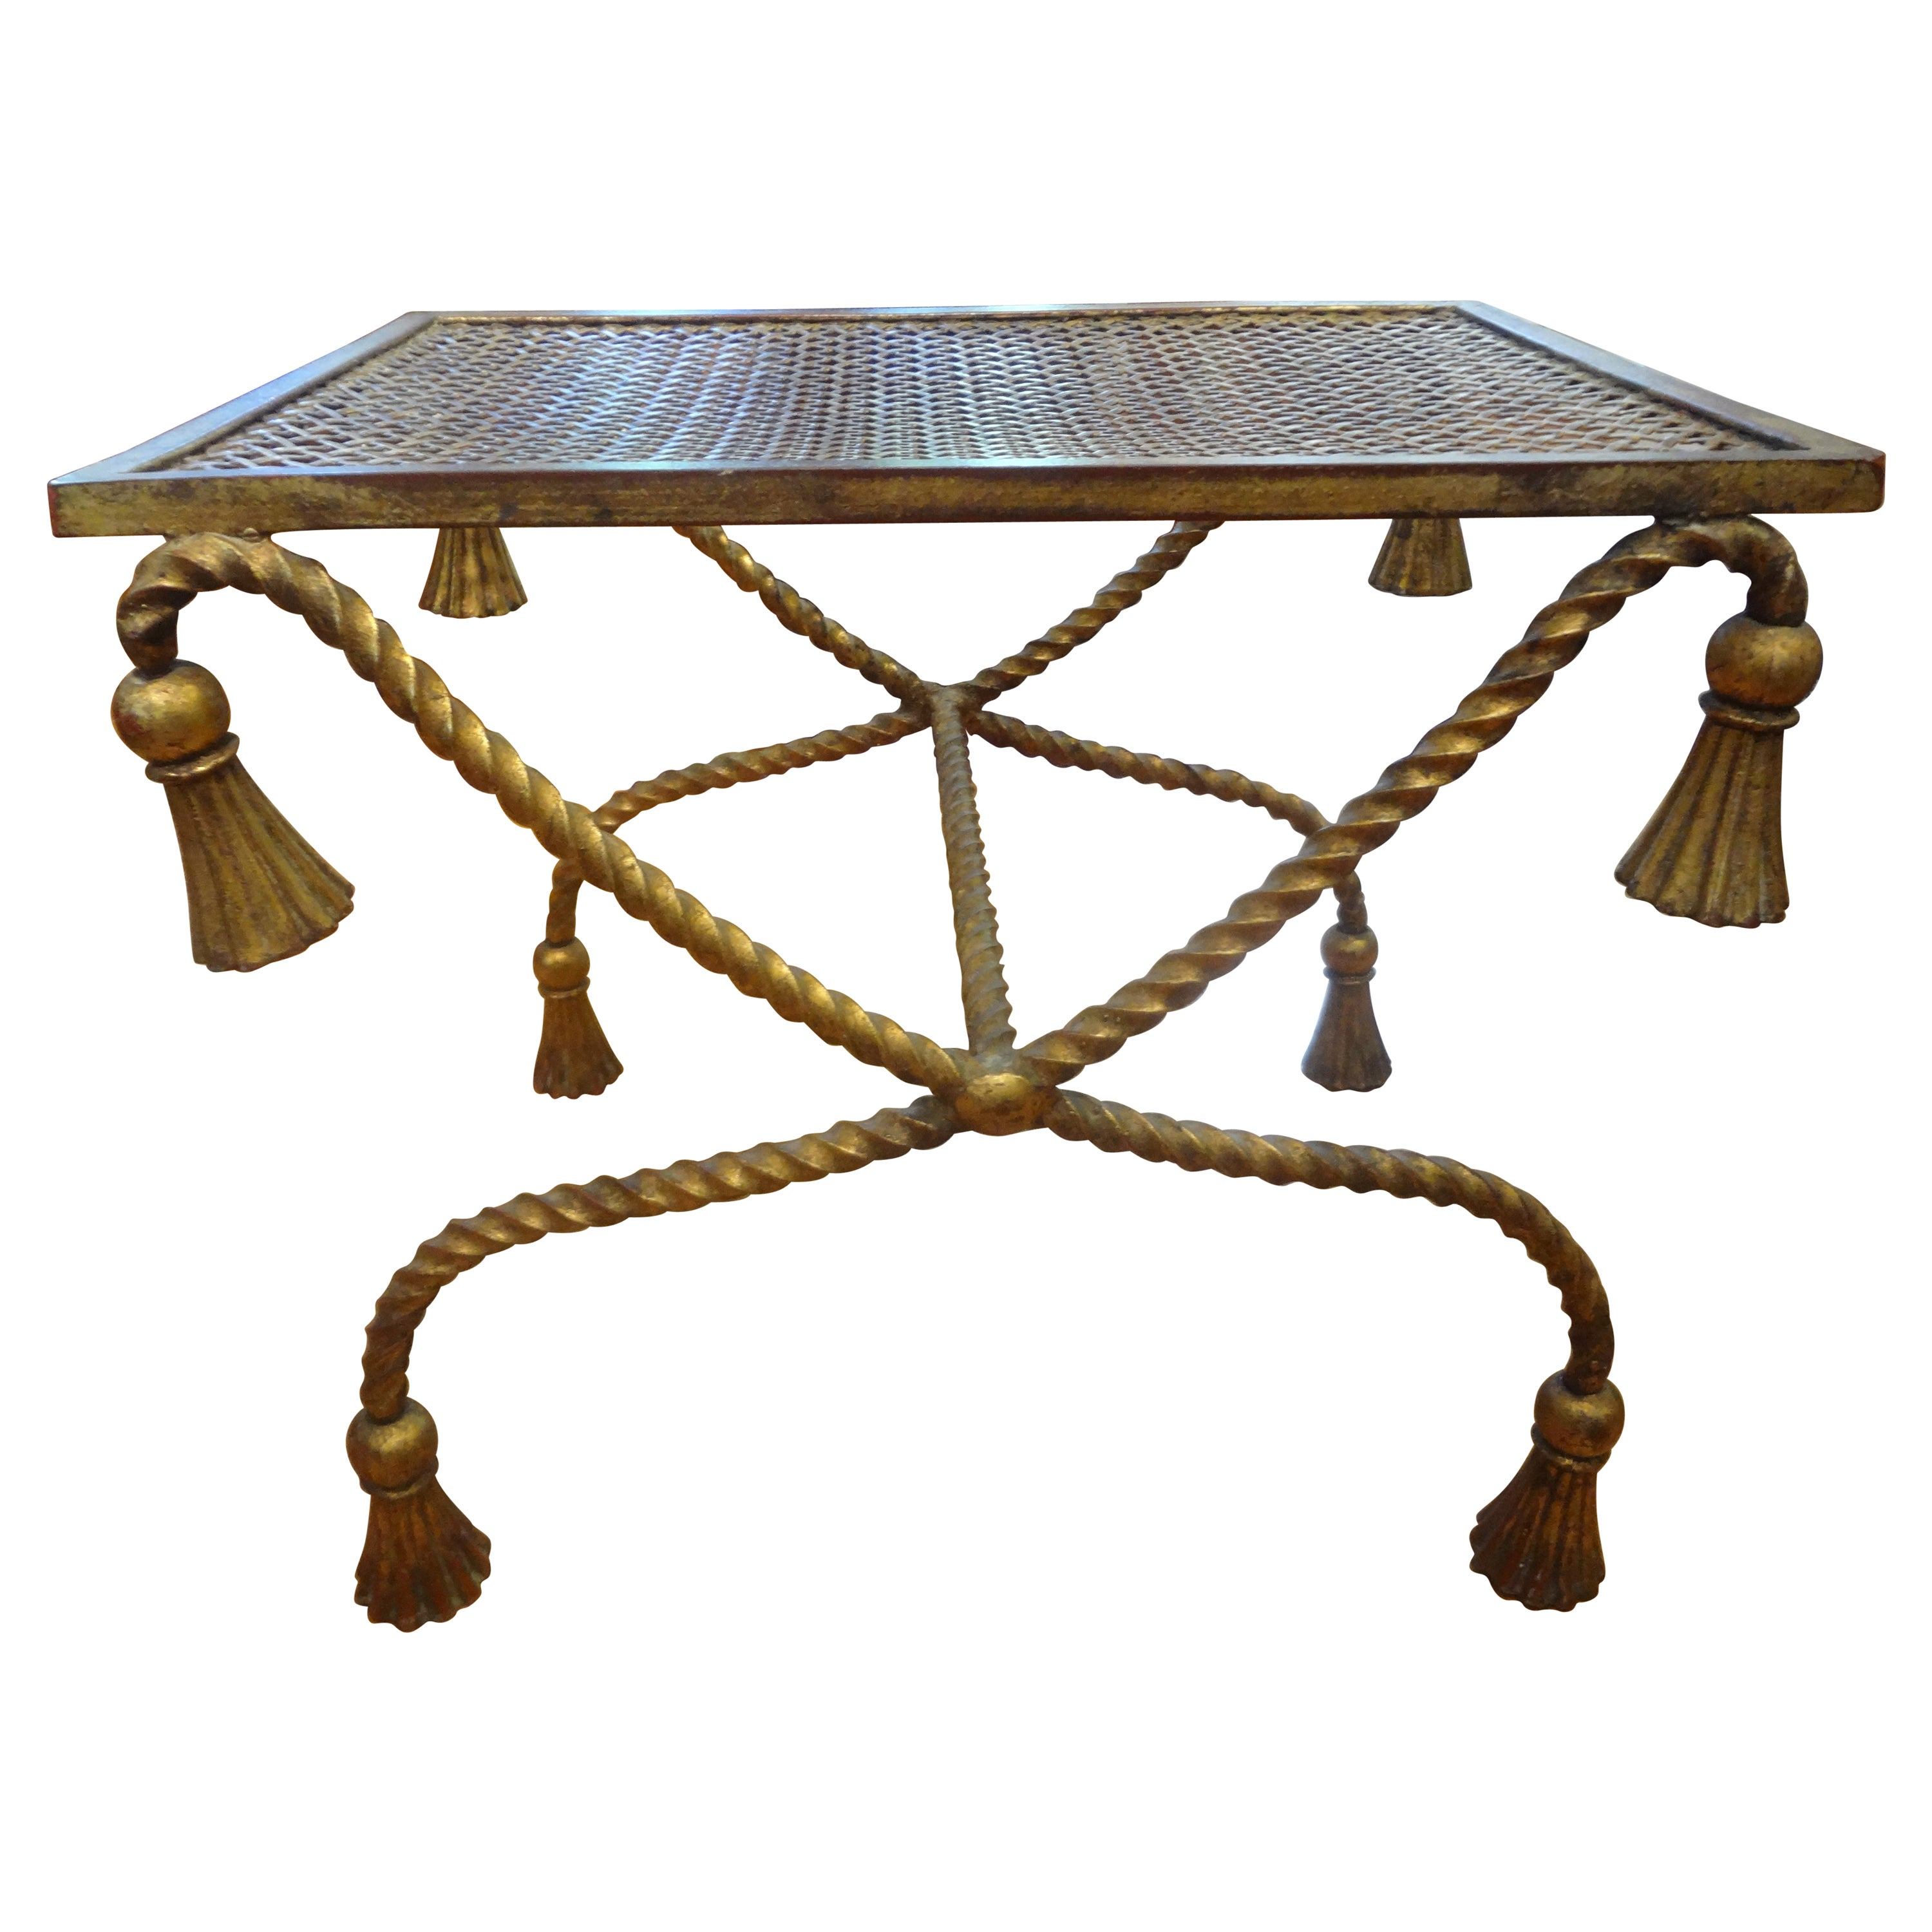 Italian Gilt Iron Rope and Tassel Table or Bench